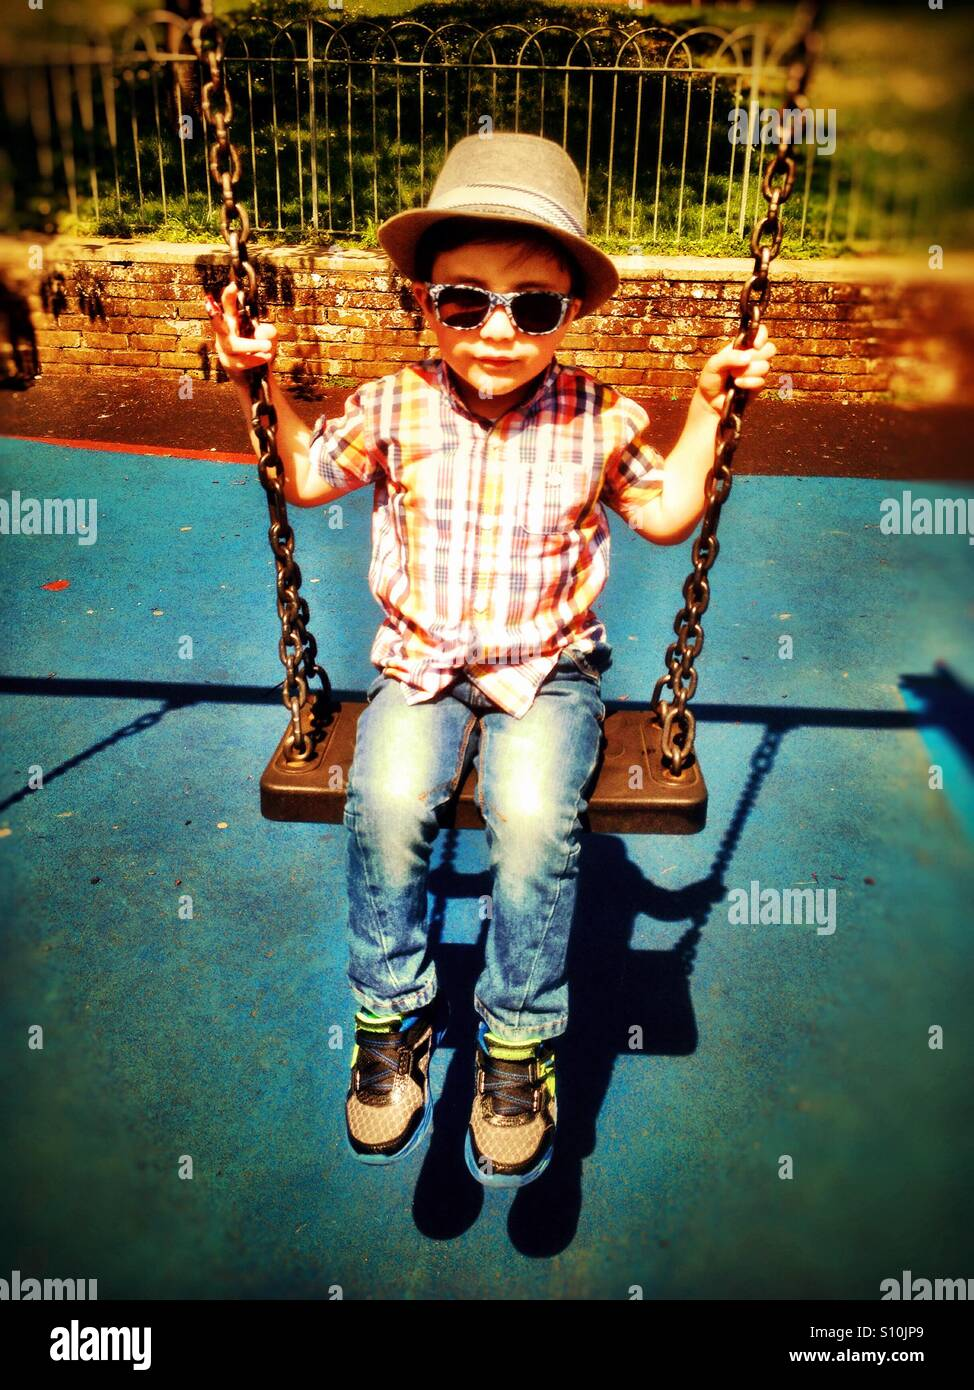 A young boy wearing hat and sunglasses plays on s swing in the park. - Stock Image